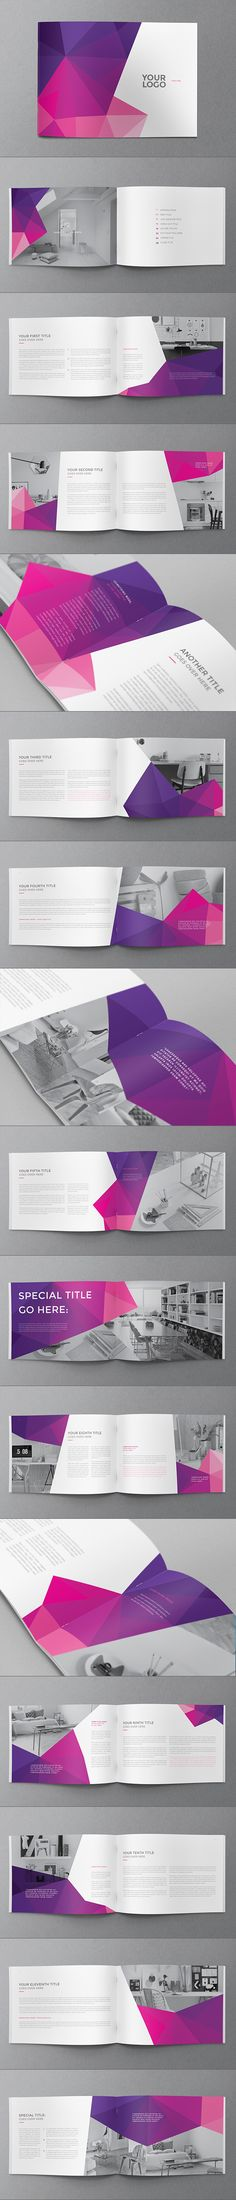 Clean Pink Pattern Brochure. Download here: http://graphicriver.net/item/clean-pink-pattern-brochure/12366013?ref=abradesign